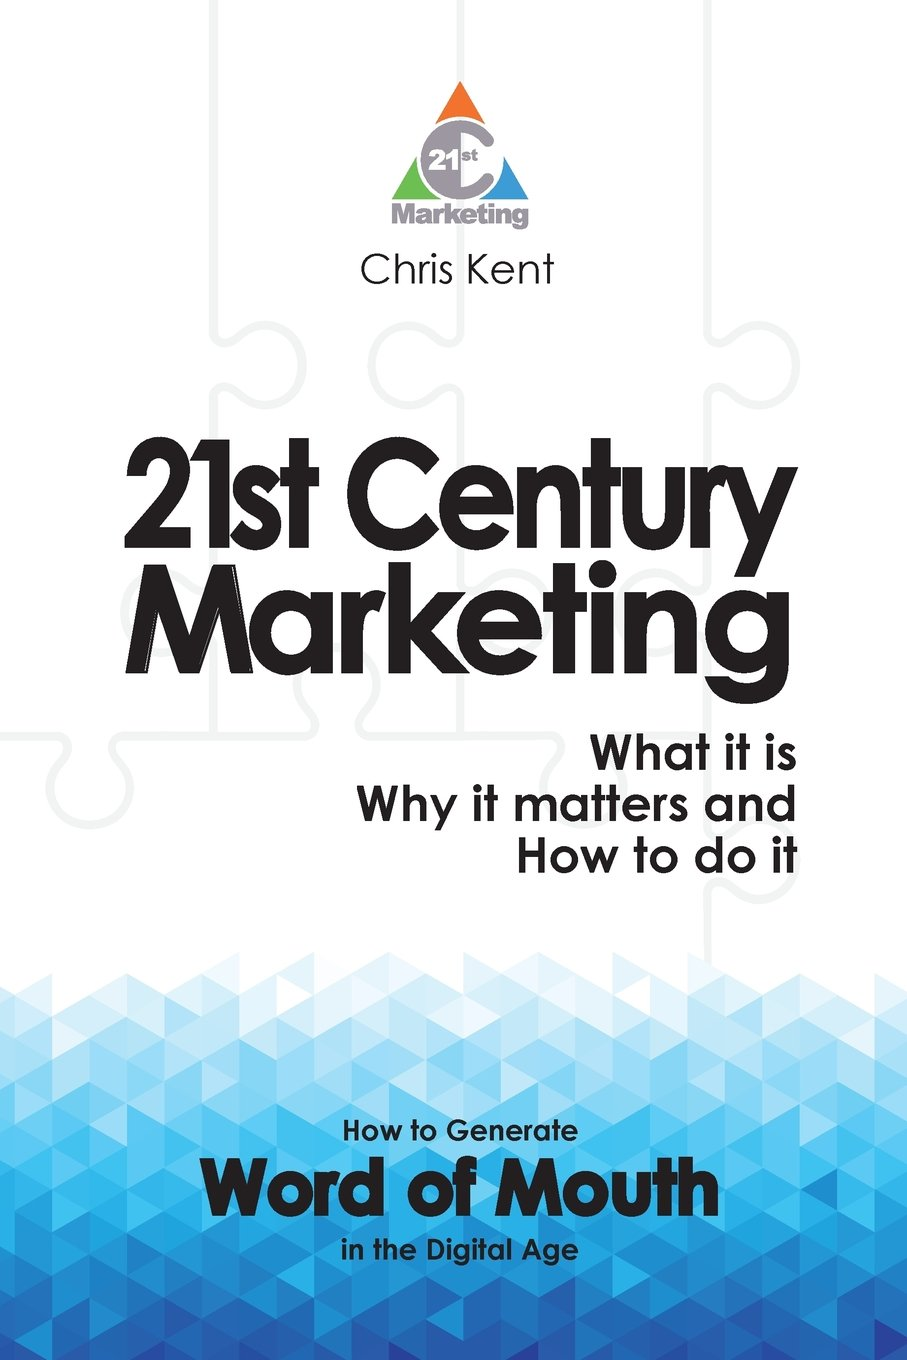 marketing in the 21st century book